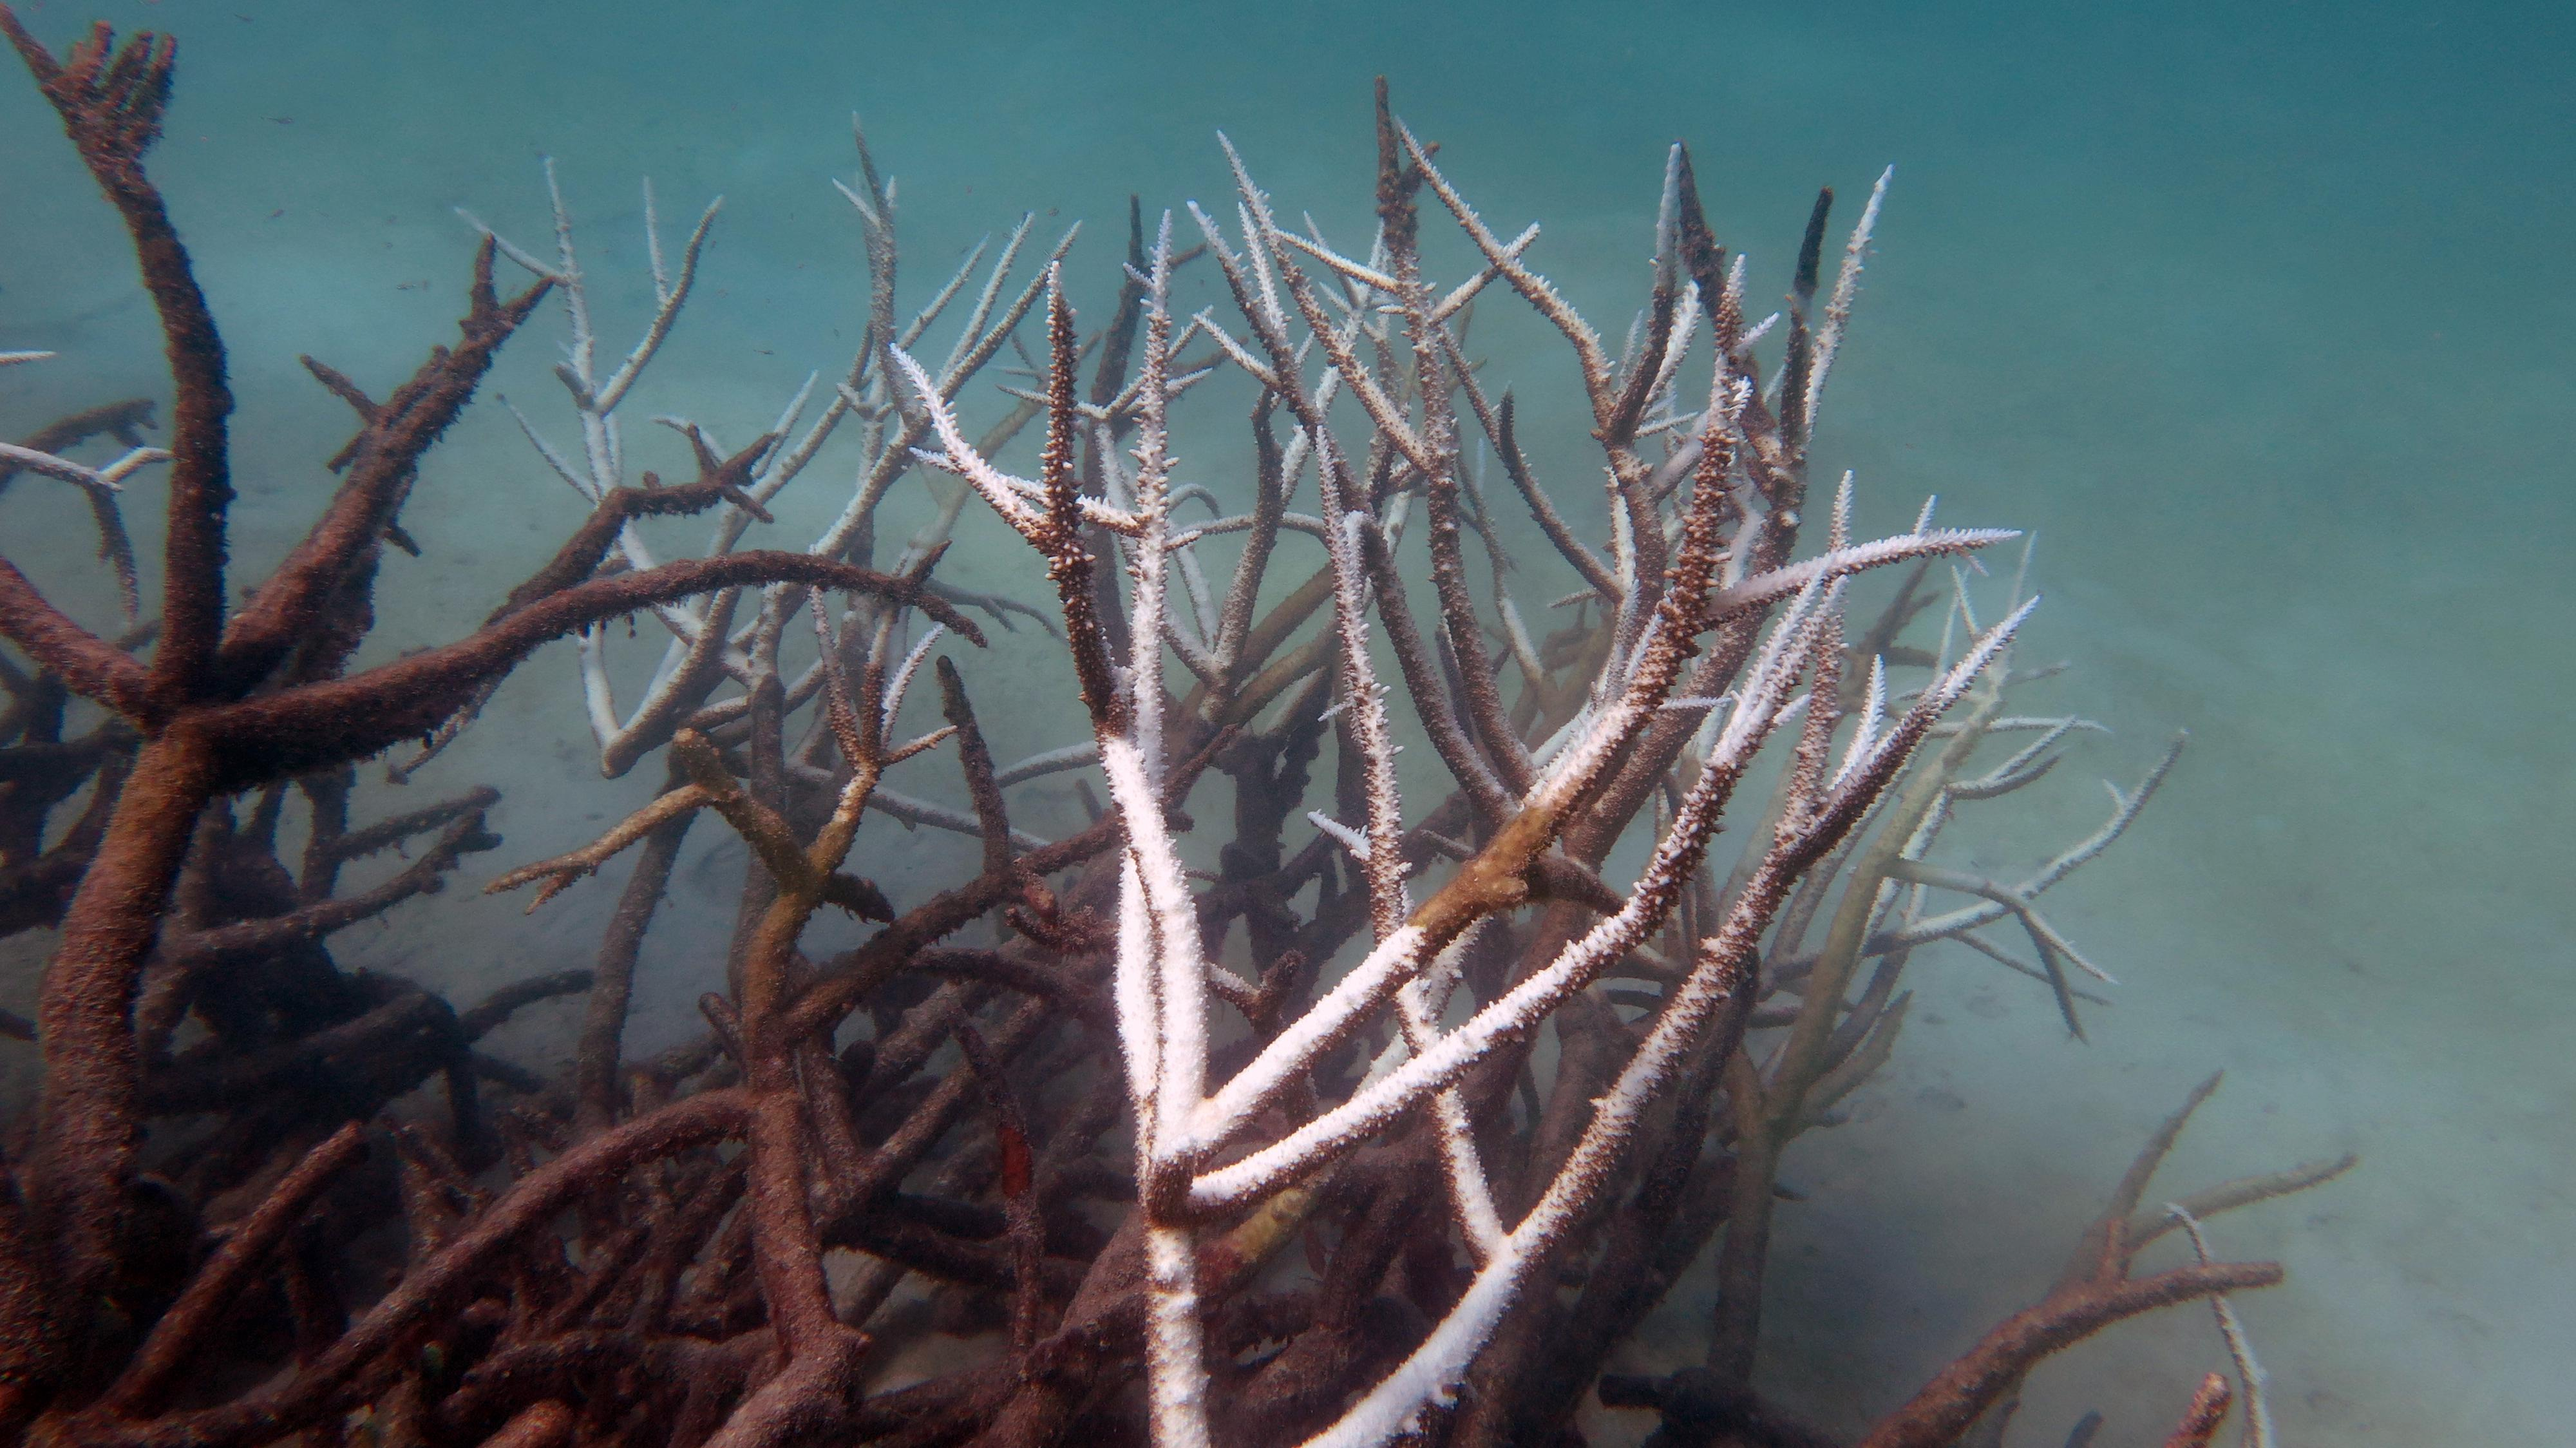 dead_and_dying_staghorn_coral_may_2016_johanna_leonhardt.jpg